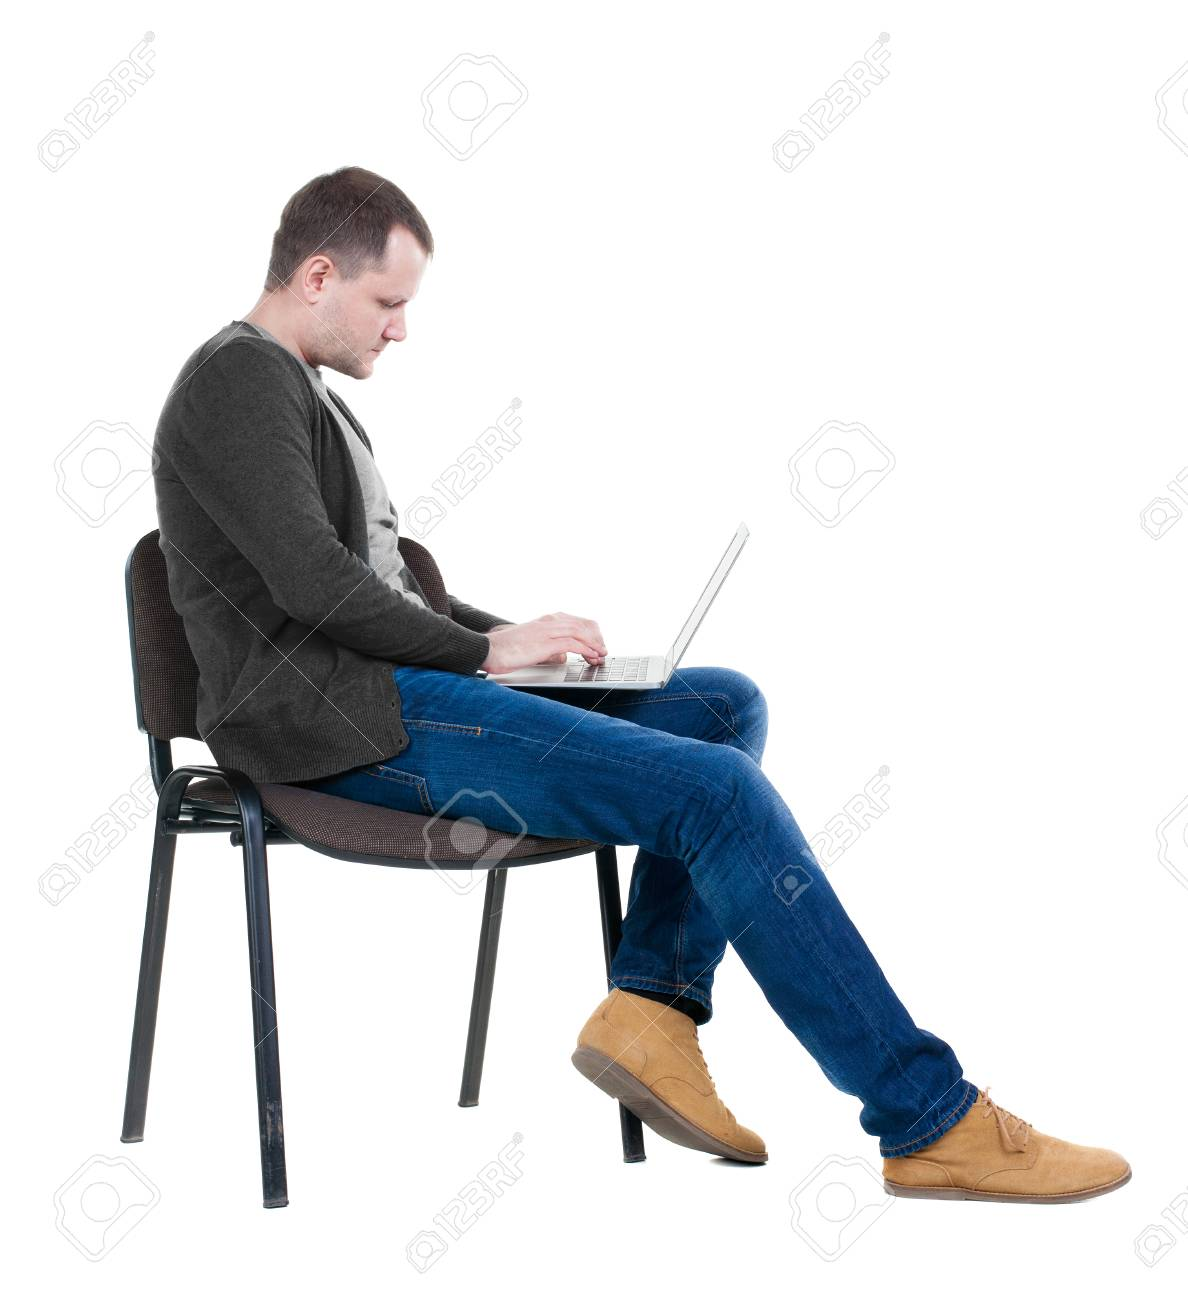 Wondrous Side View Of A Man Sitting On A Chair To Study With A Laptop Caraccident5 Cool Chair Designs And Ideas Caraccident5Info